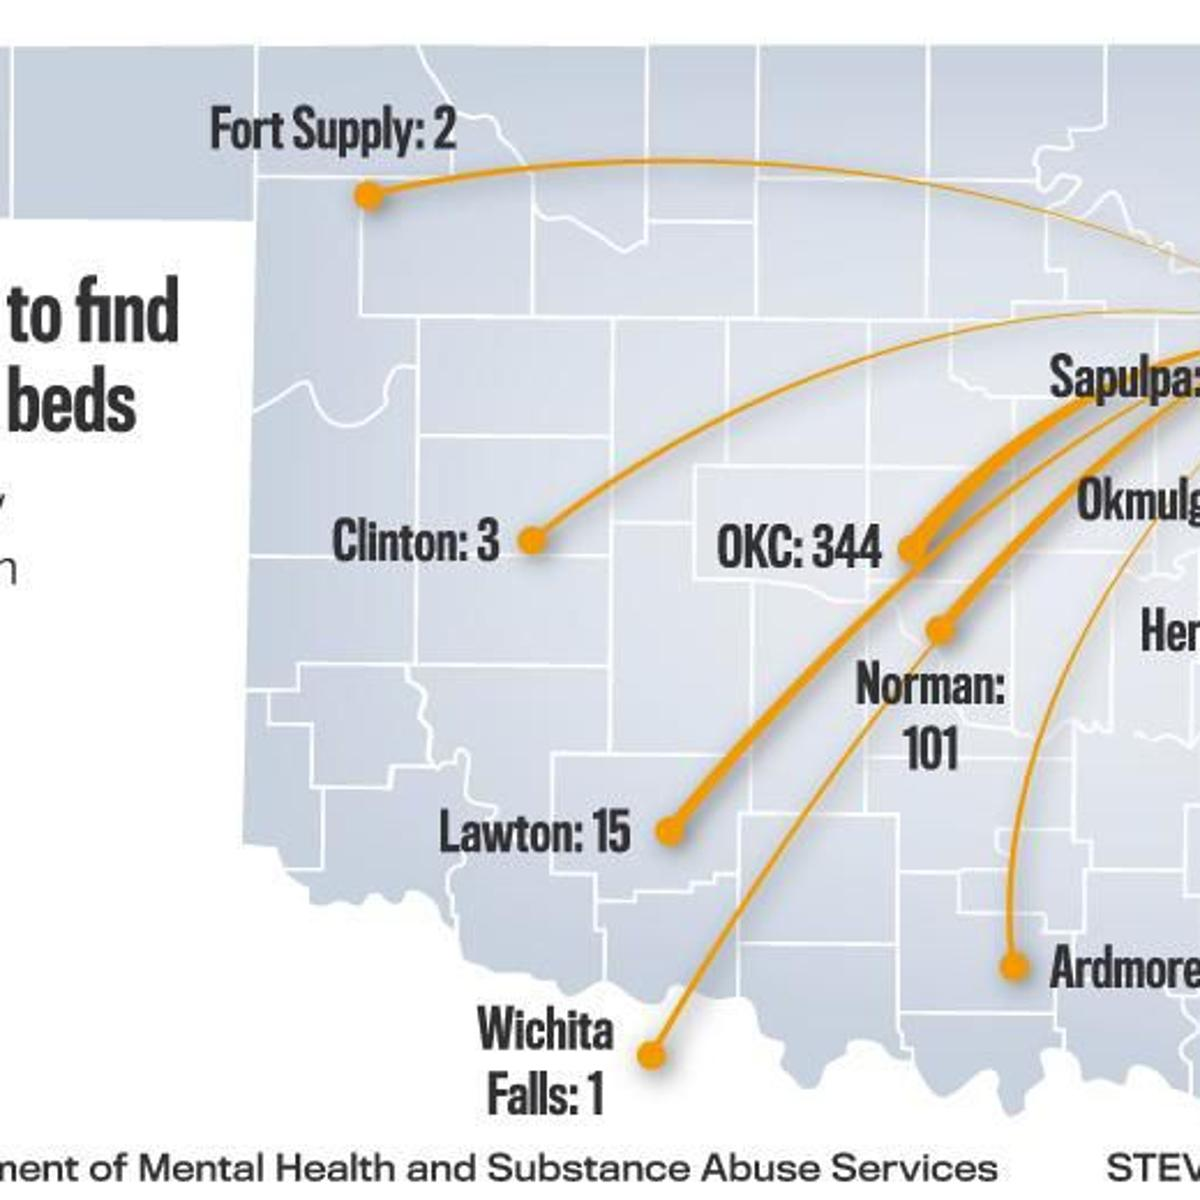 Tulsa S Mental Health Care System A Mixed Picture Of Mental Health And Well Being Local News Tulsaworld Com